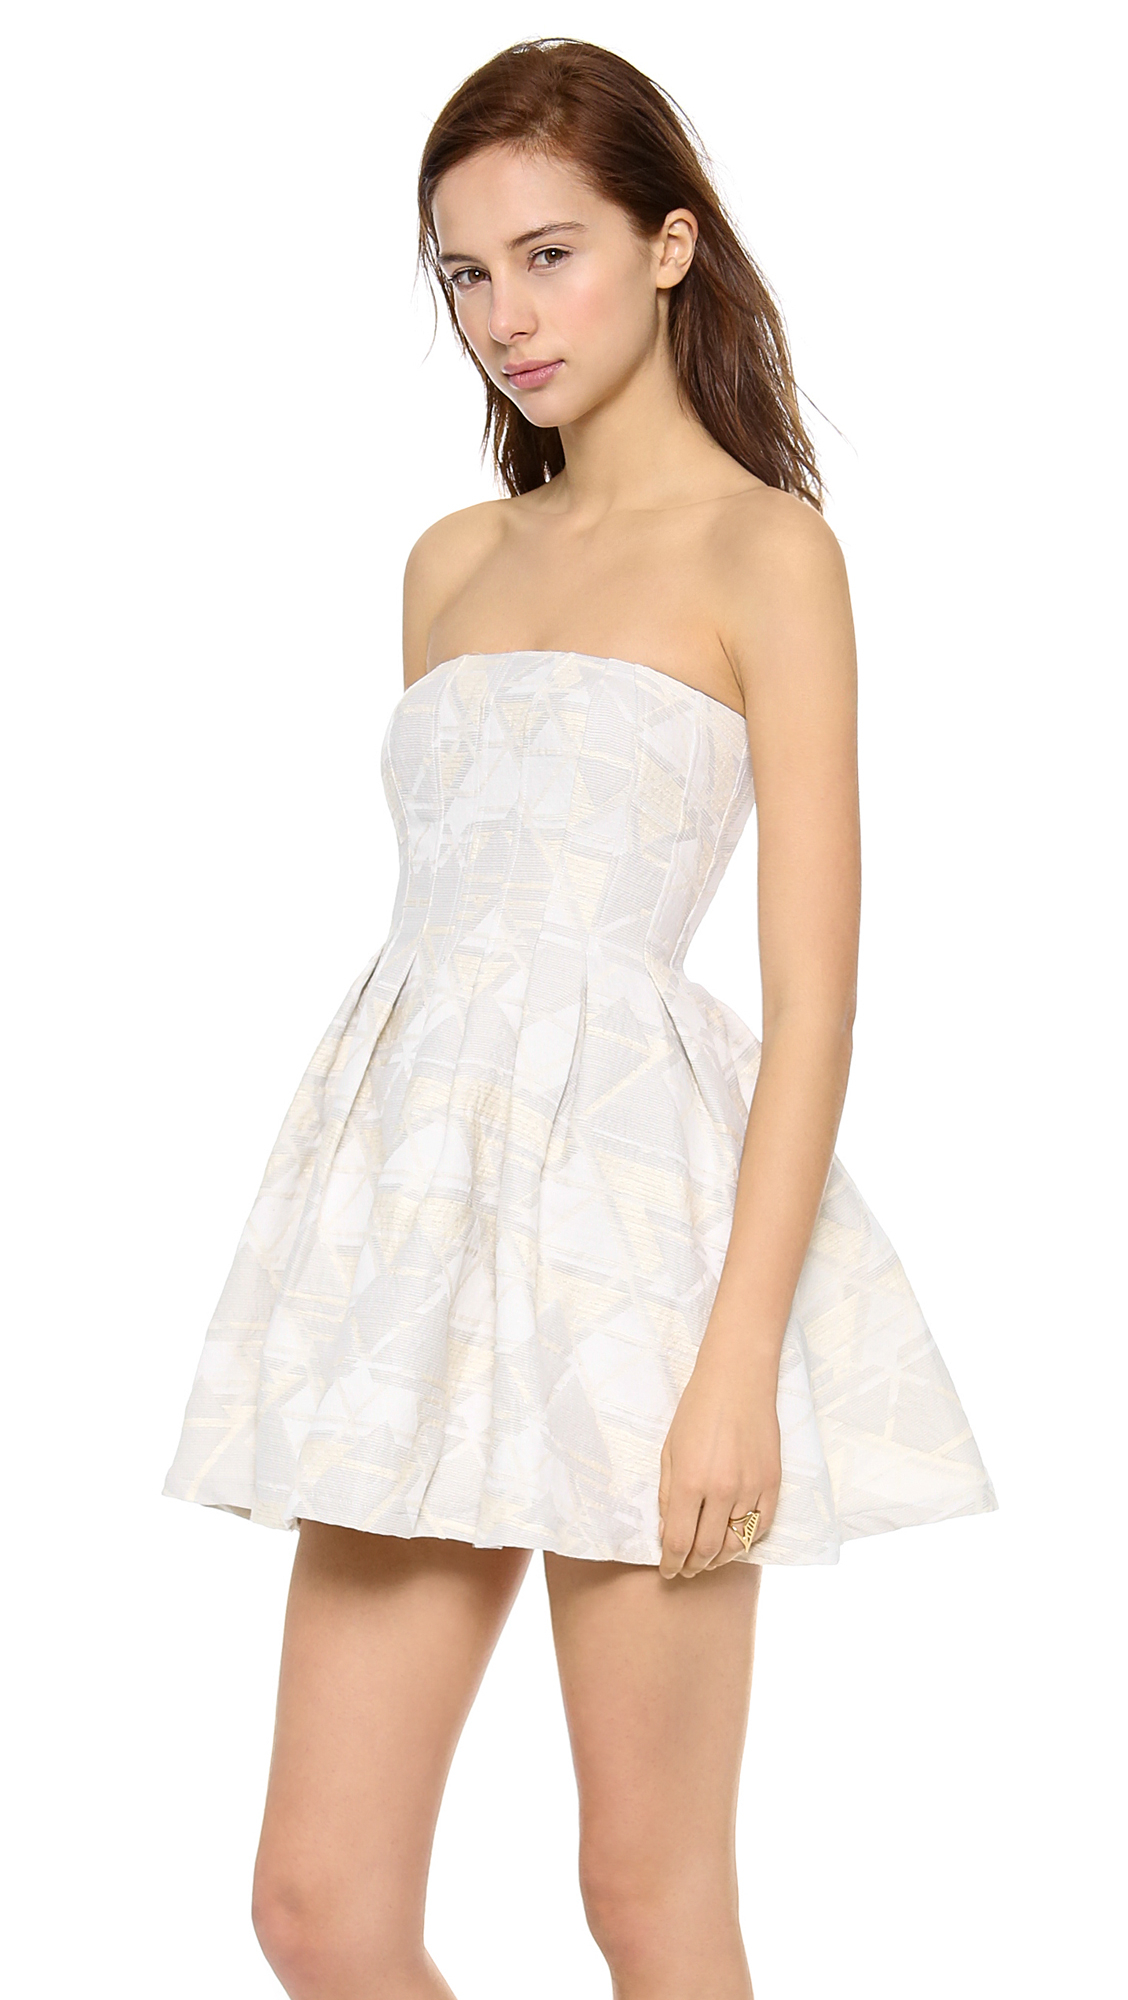 Strapless Terry Cloth Dress